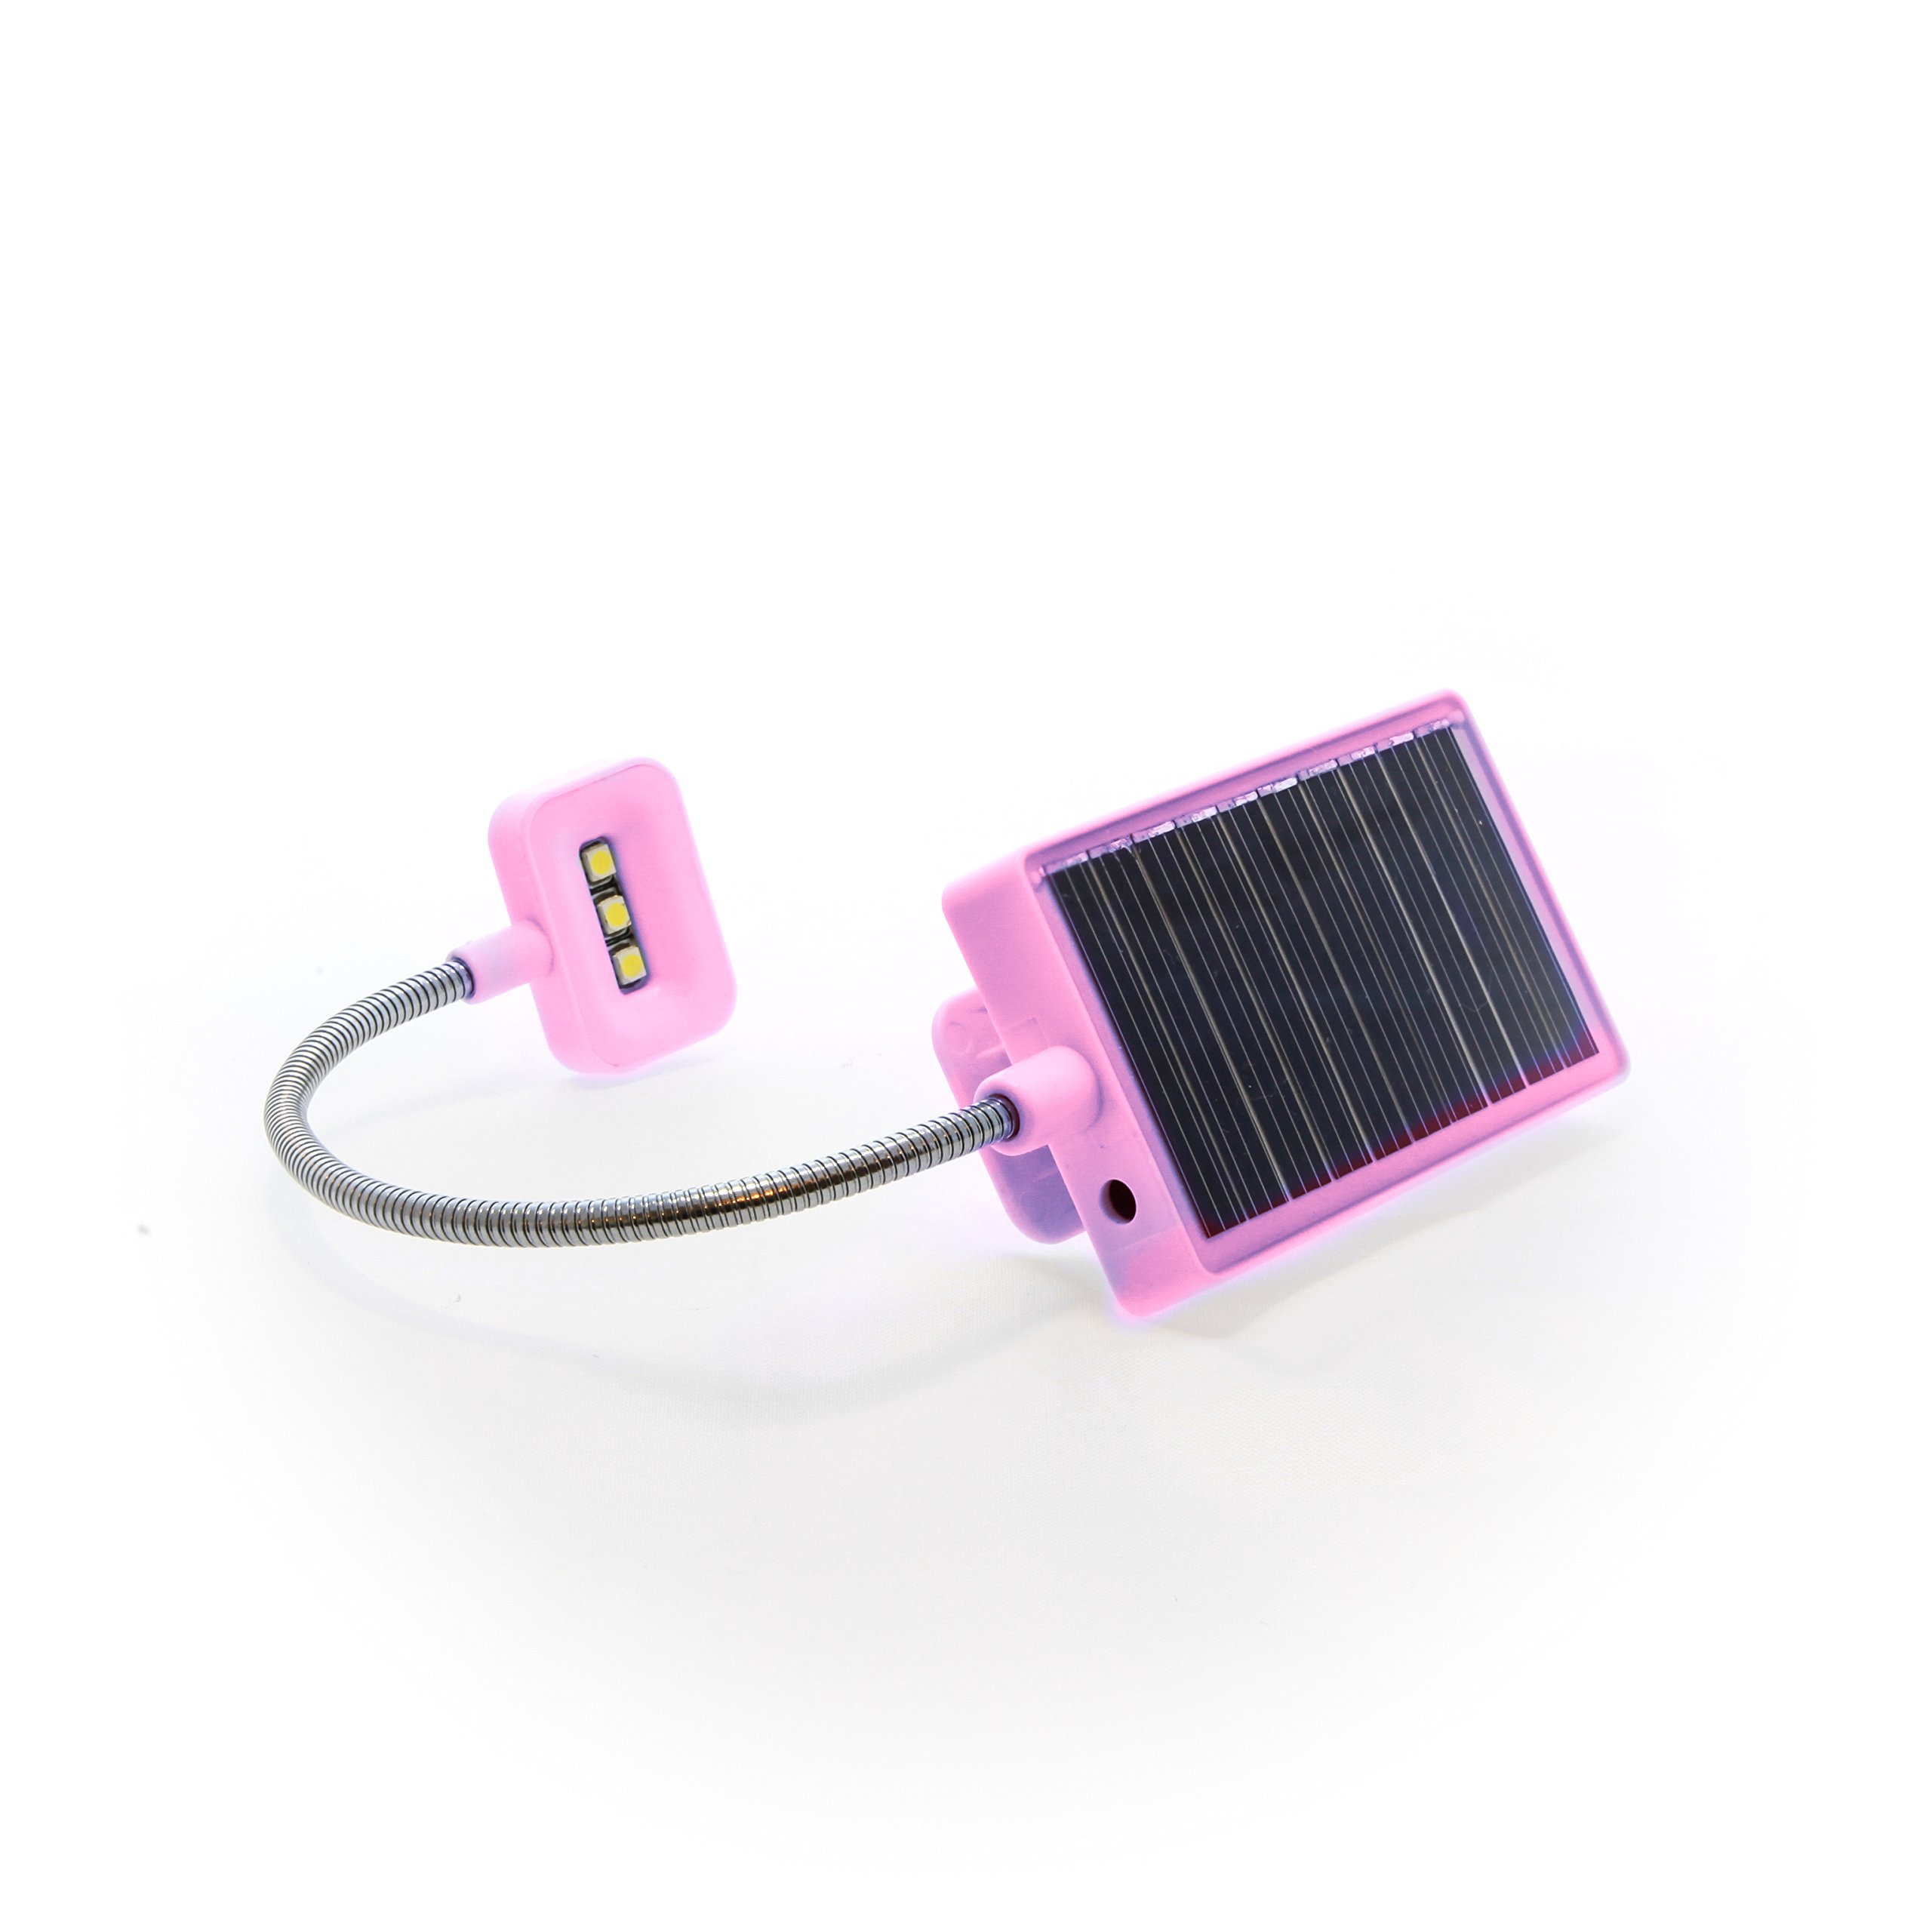 Solar Rechargeable Book Light Ideal for Reading in Bed - Solar or USB Rechargeable LED Clip-On Reading Light - 2 Light Settings Suitable for Bed Reading and Car Reading - Perfect for Kids (Pink)